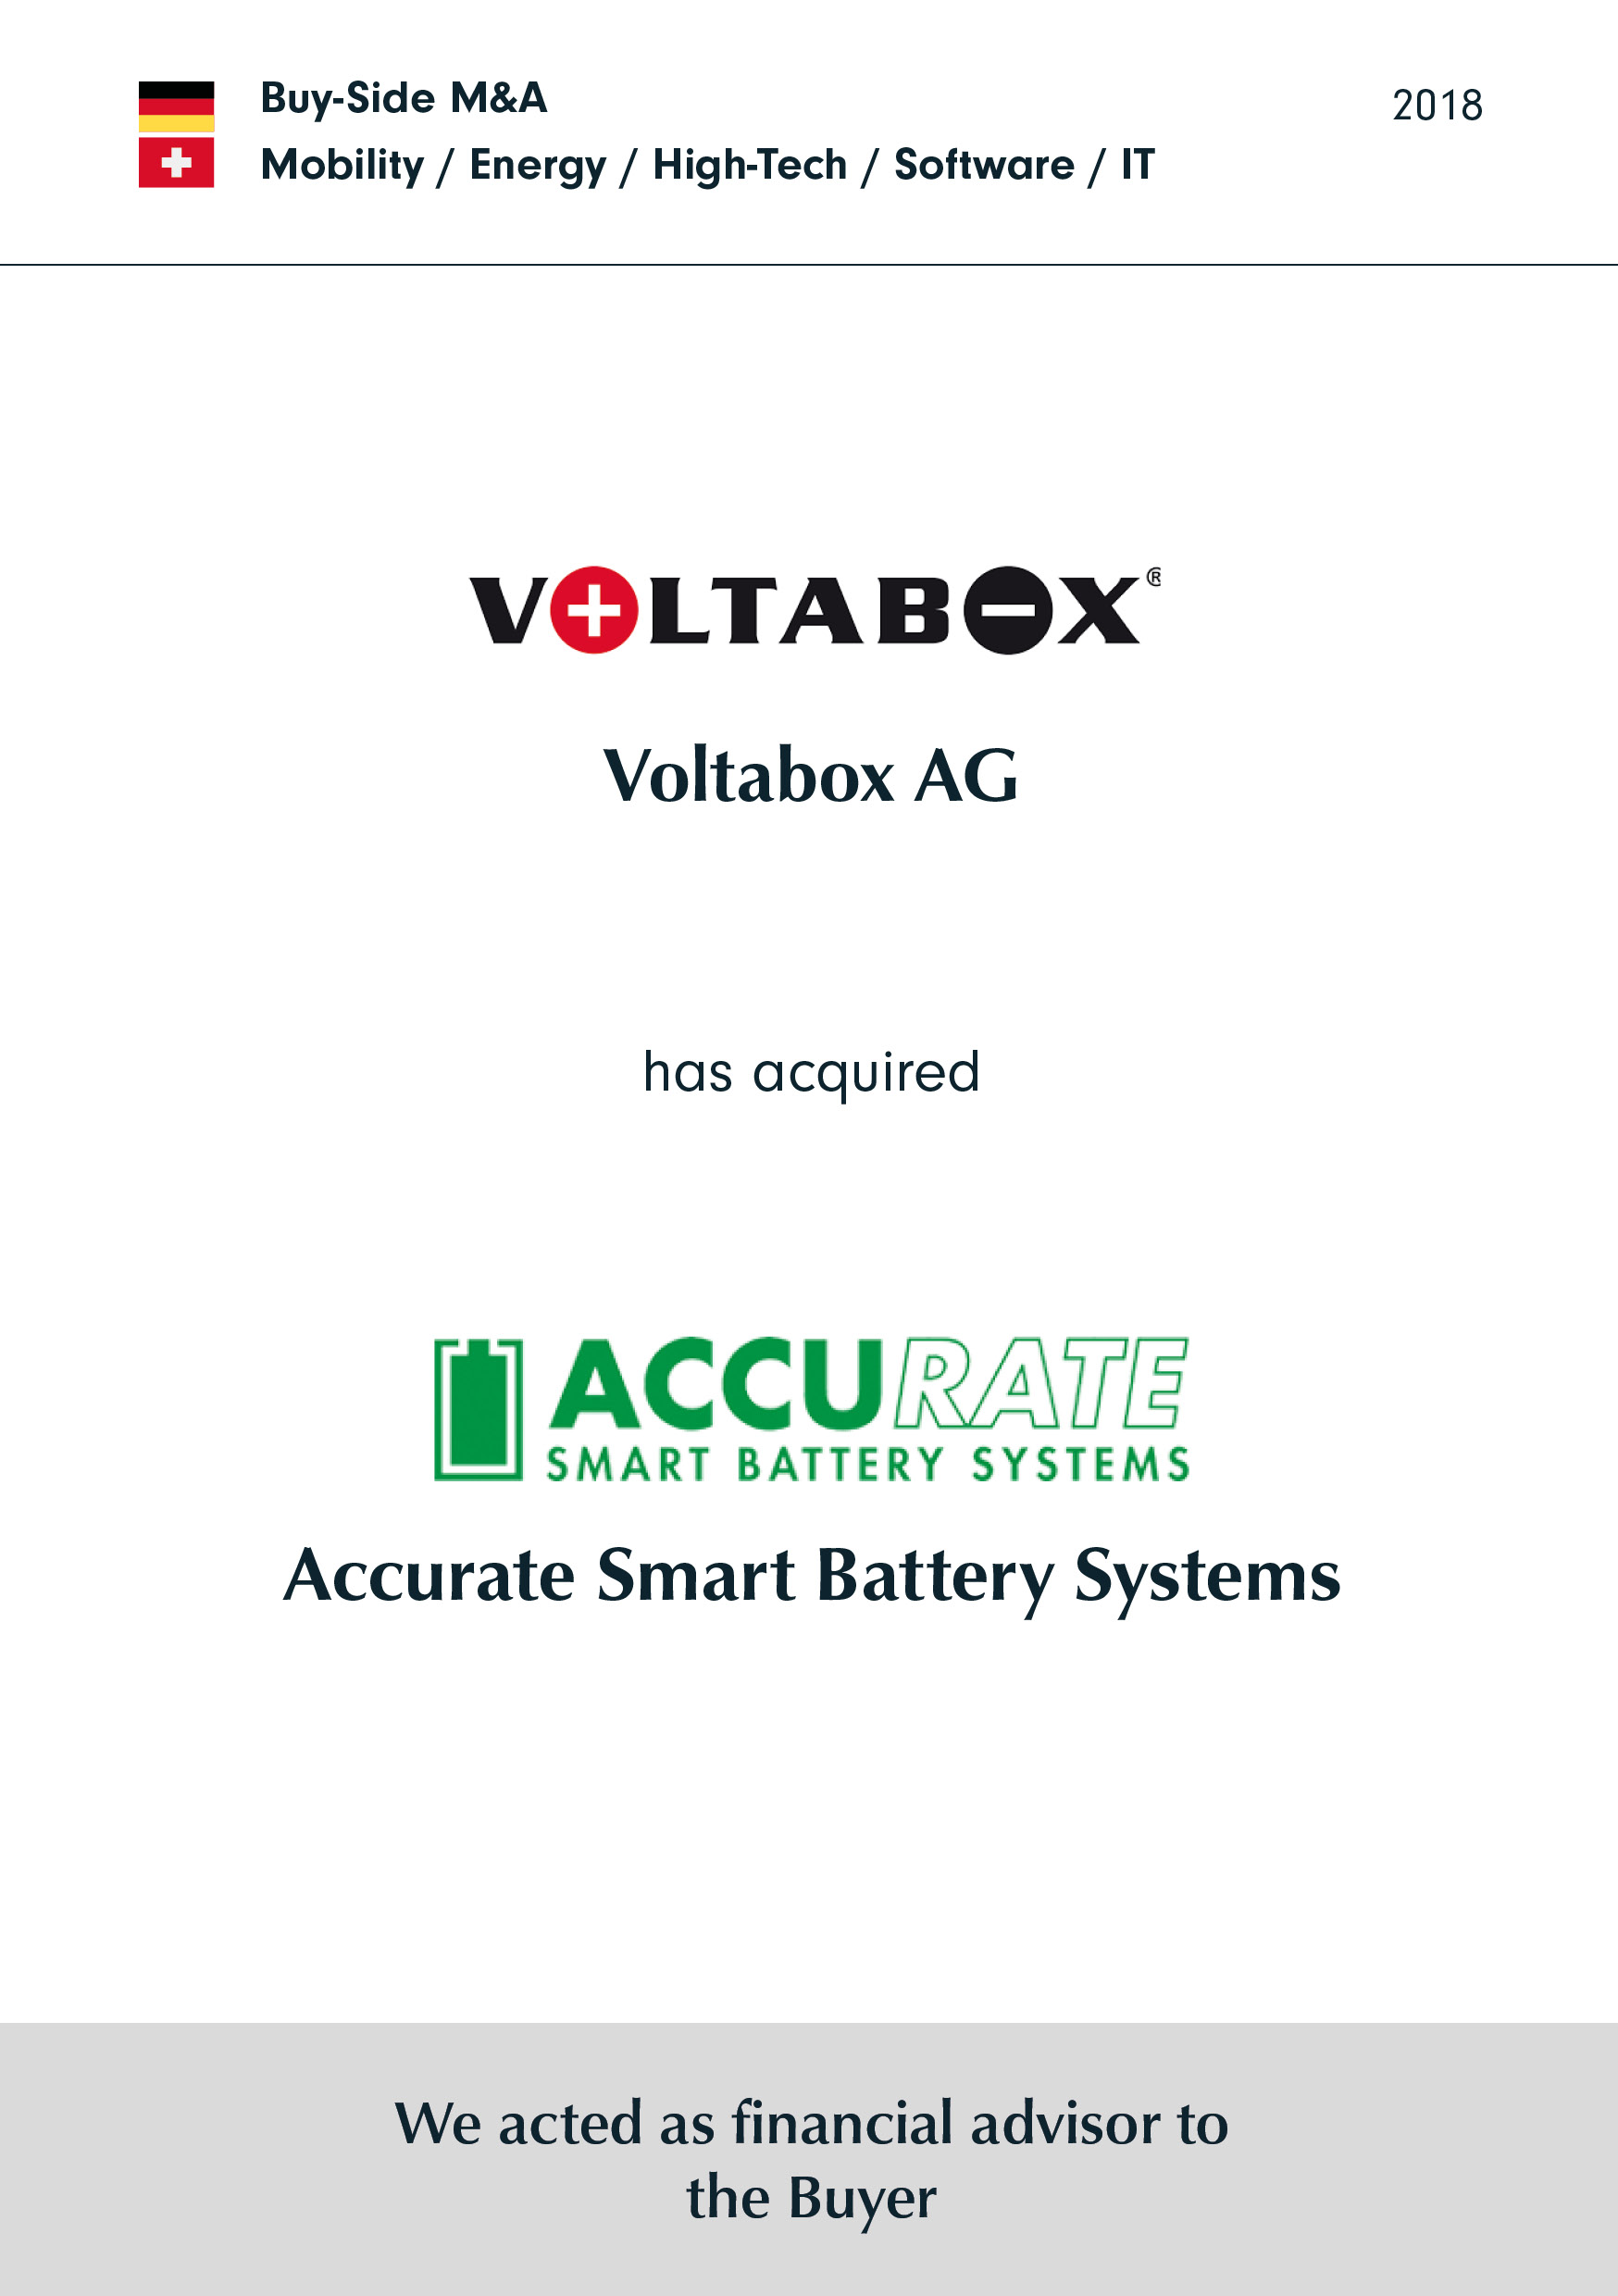 Voltabox | hat | Accurate Smart Battery Systems | erworben